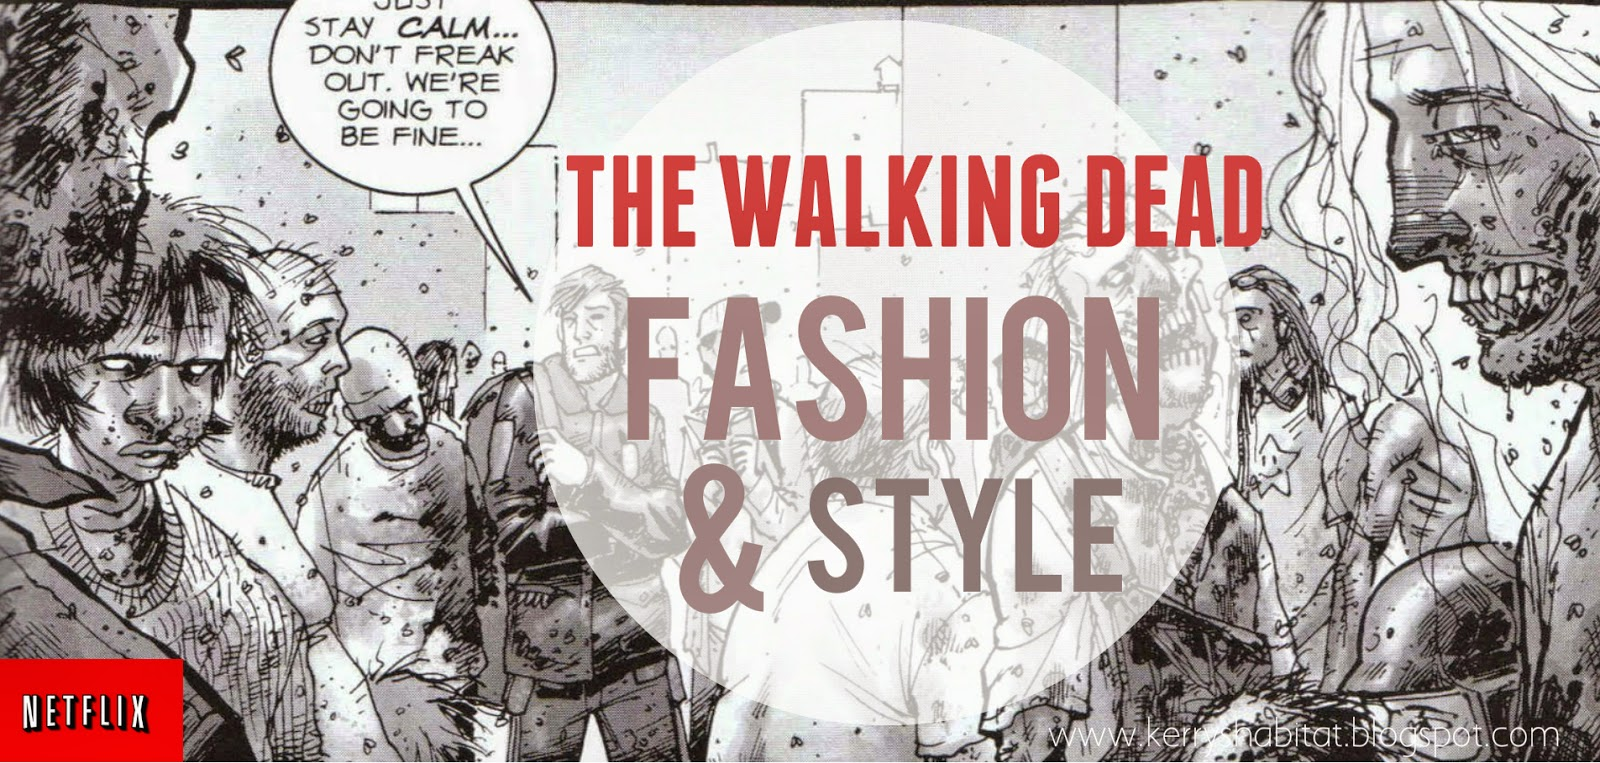 http://kerryshabitat.blogspot.co.uk/2014/05/walking-dead-fashion-dead-serious.html